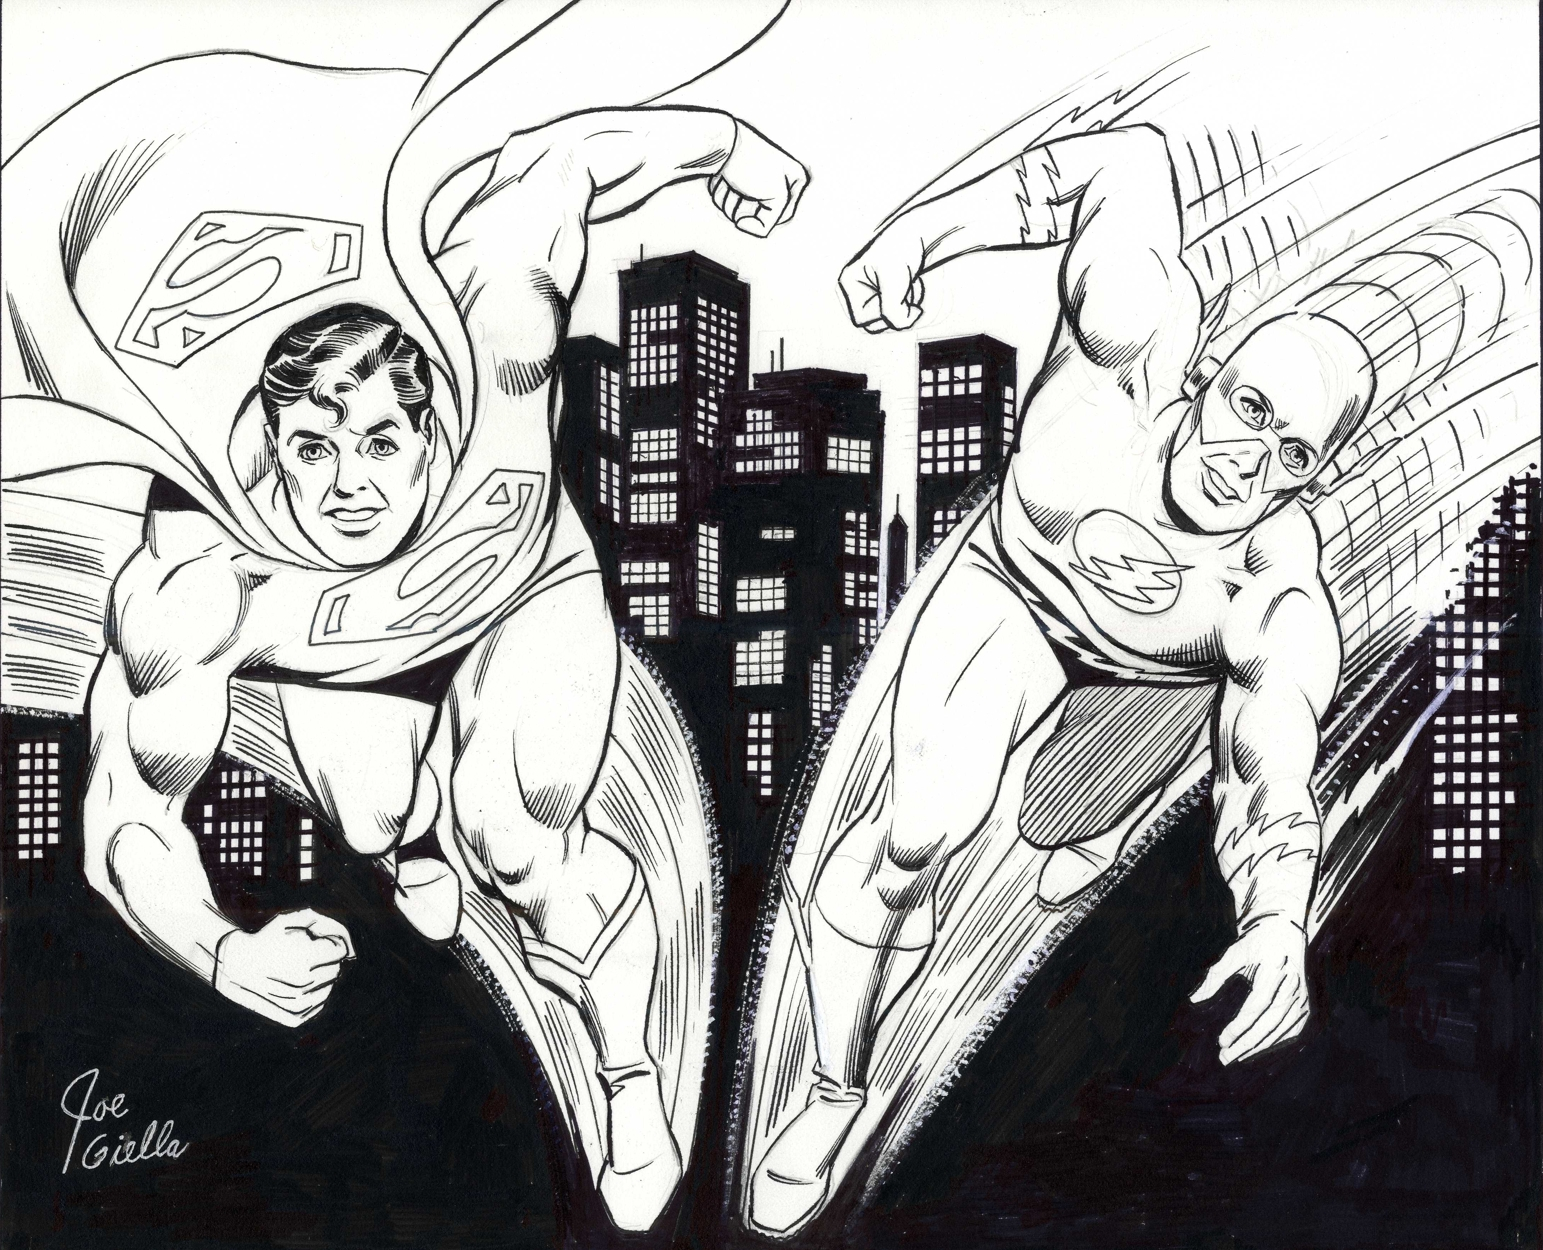 A commission from Joe Giella featuring Superman & The Flash.